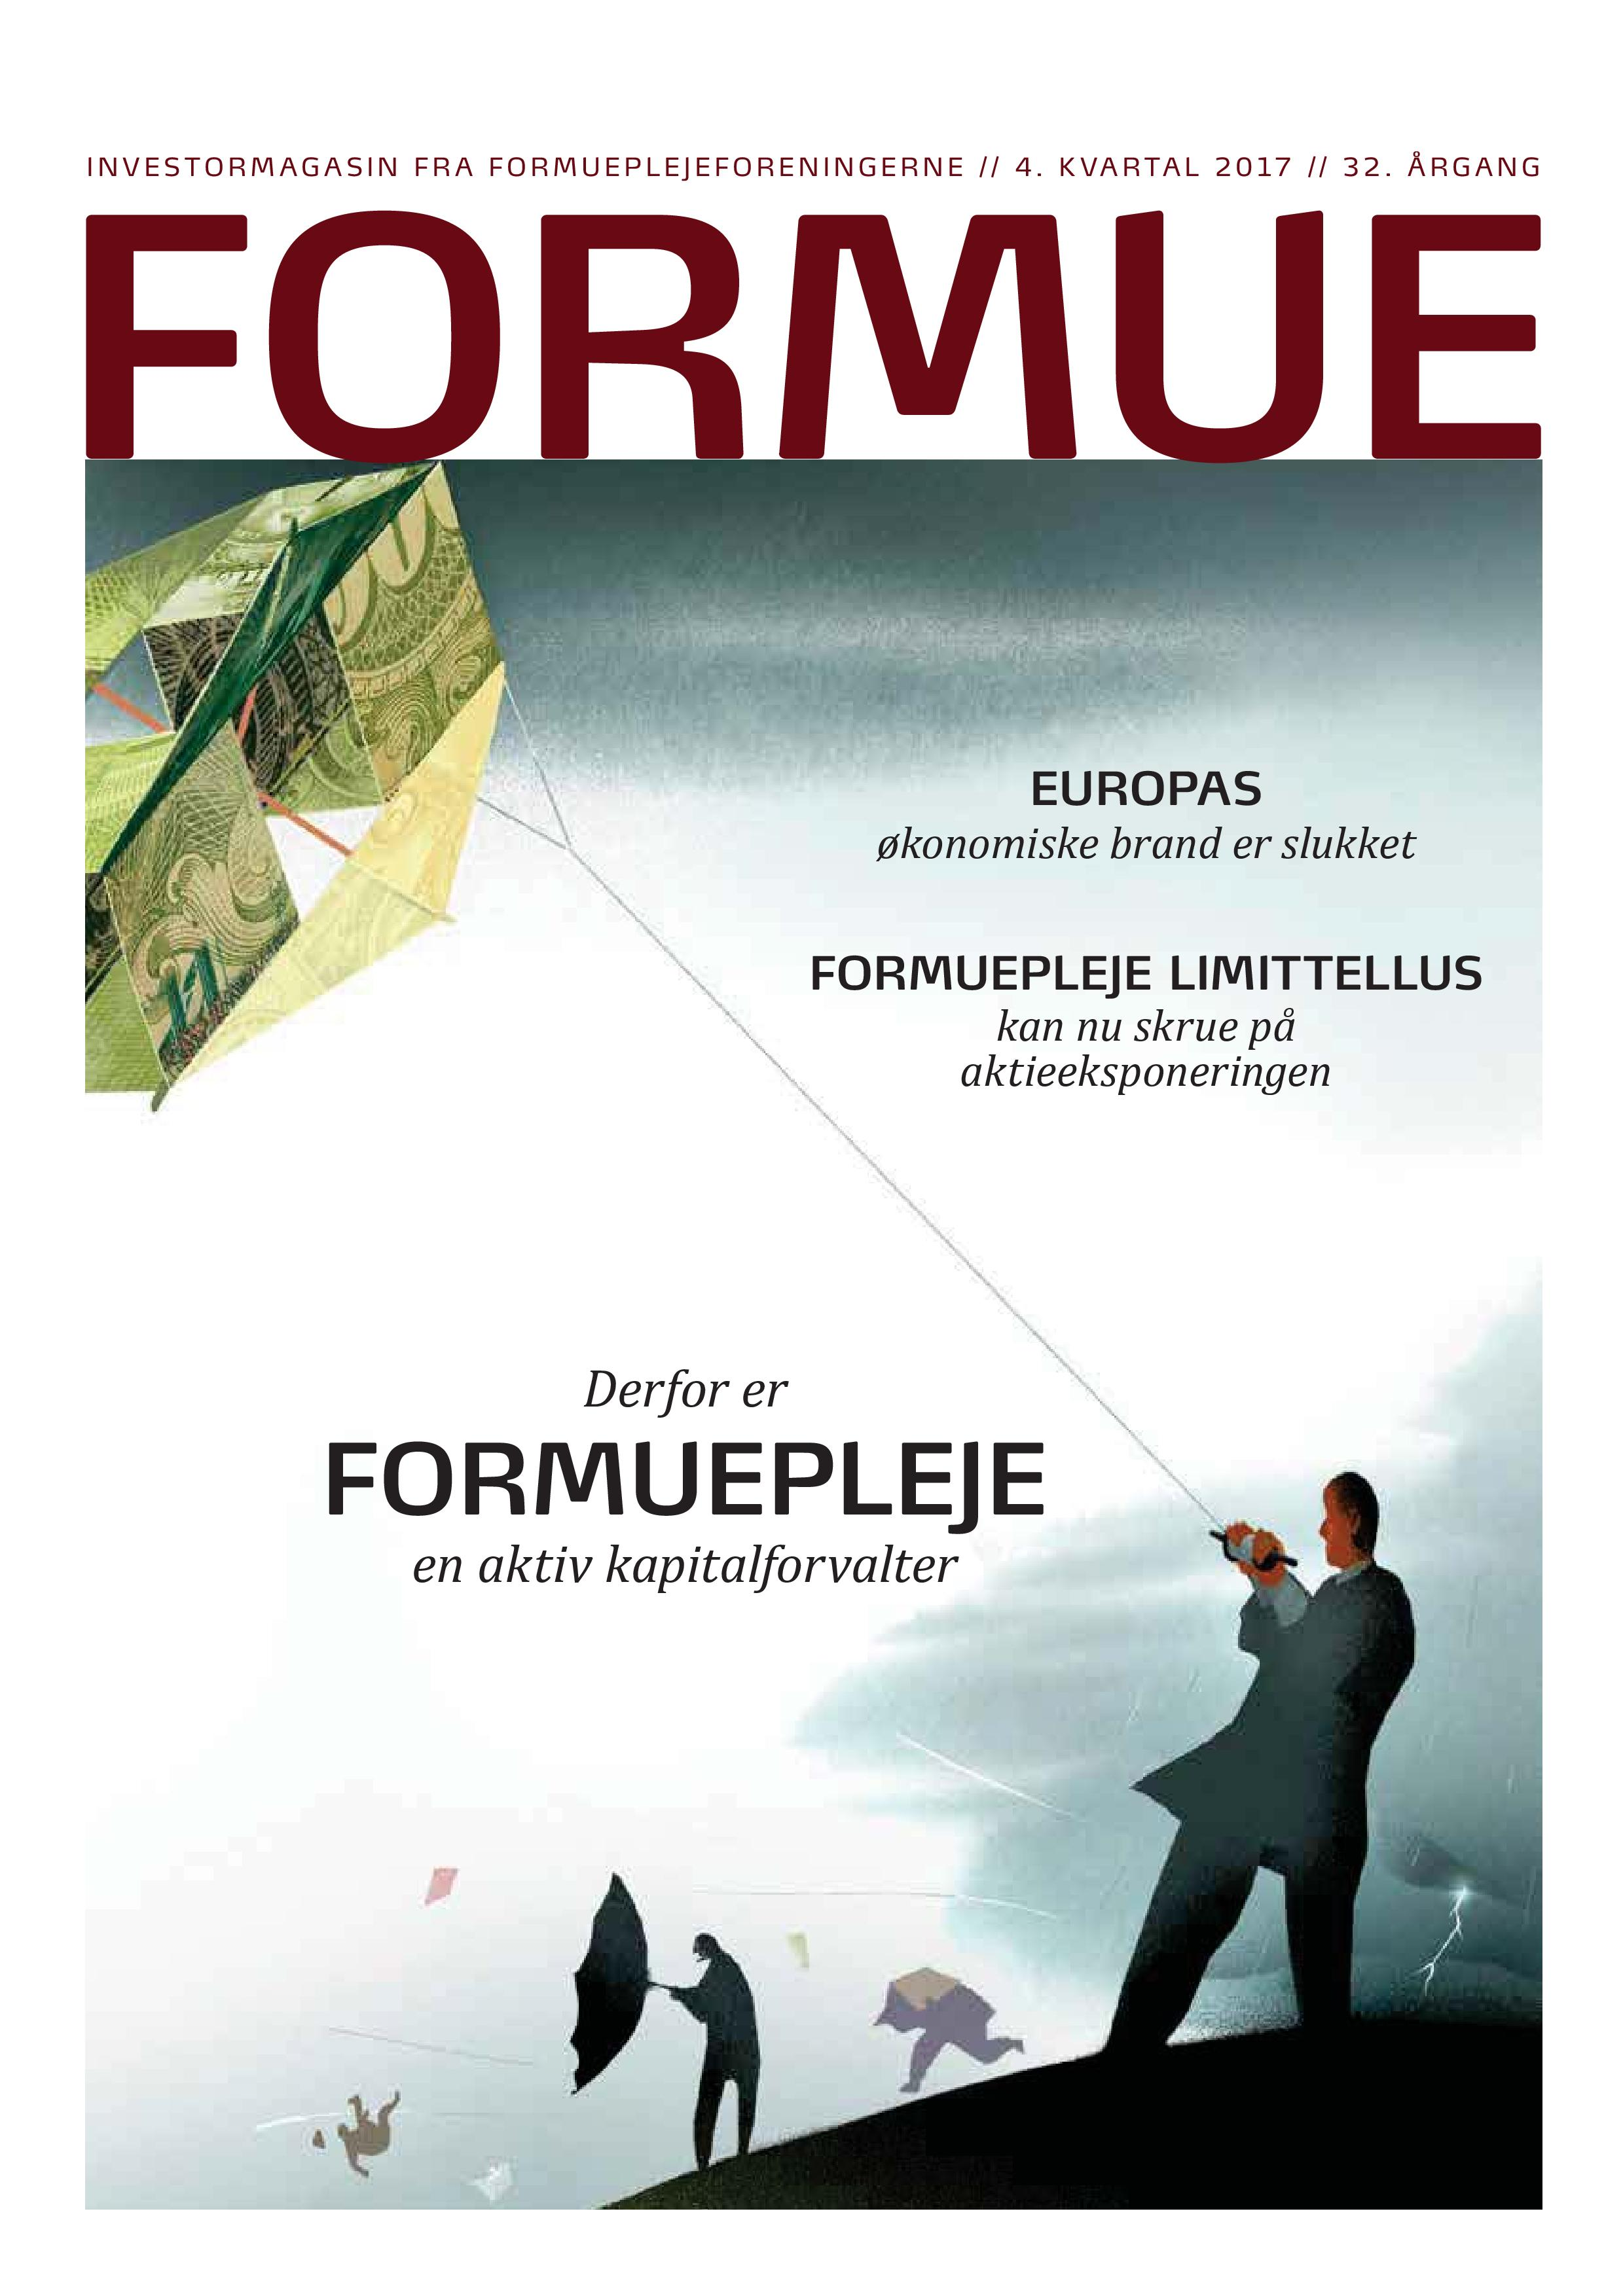 Magasin Formue 04/2017